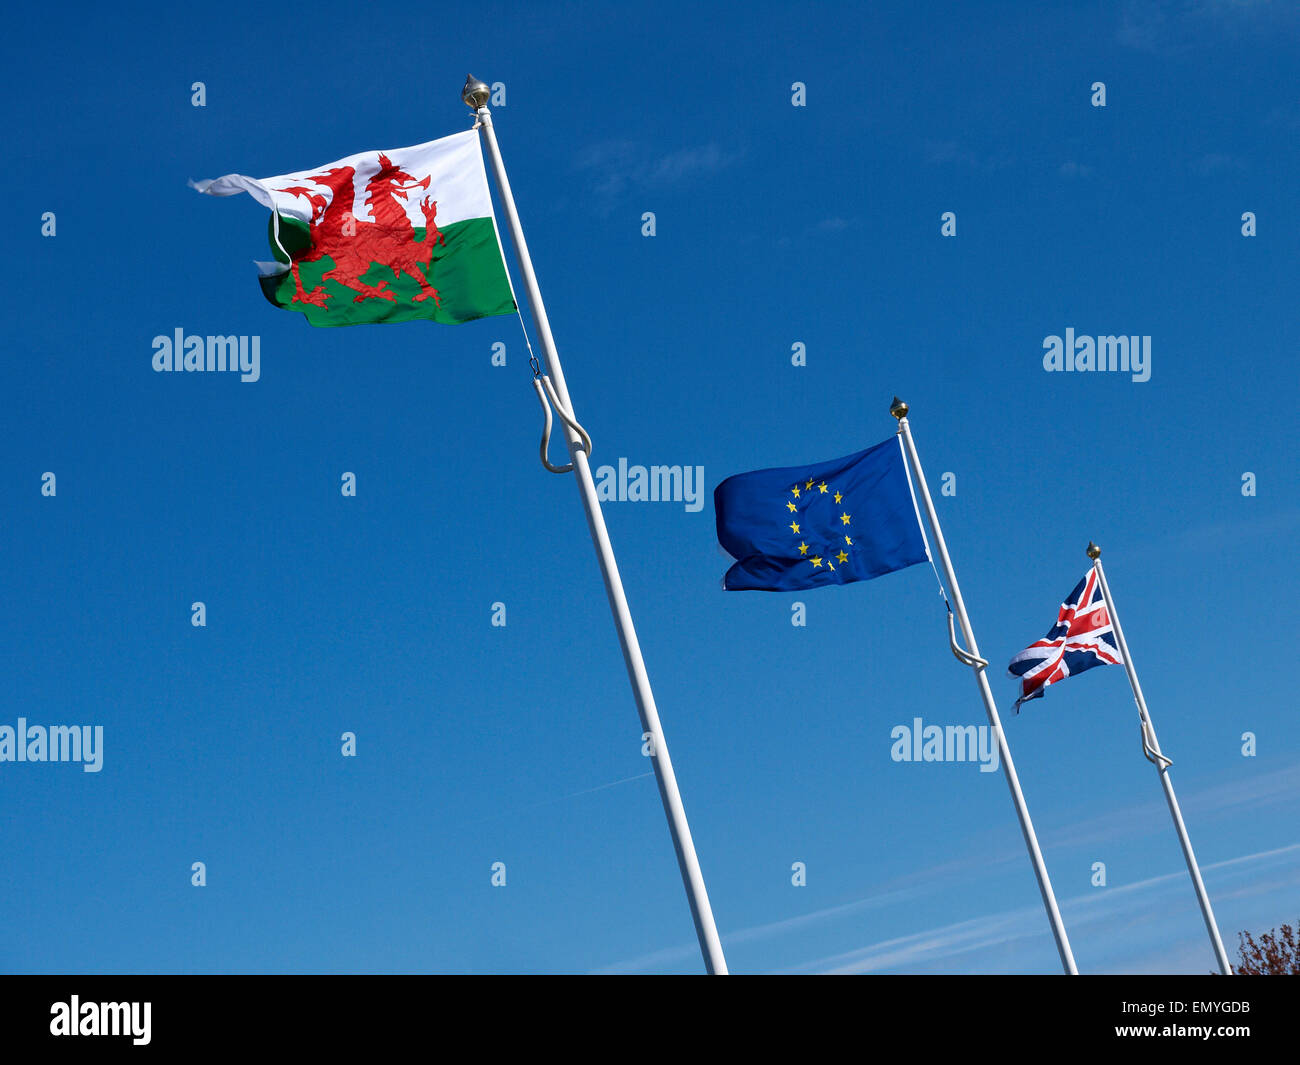 English, Welsch and European flags - Stock Image